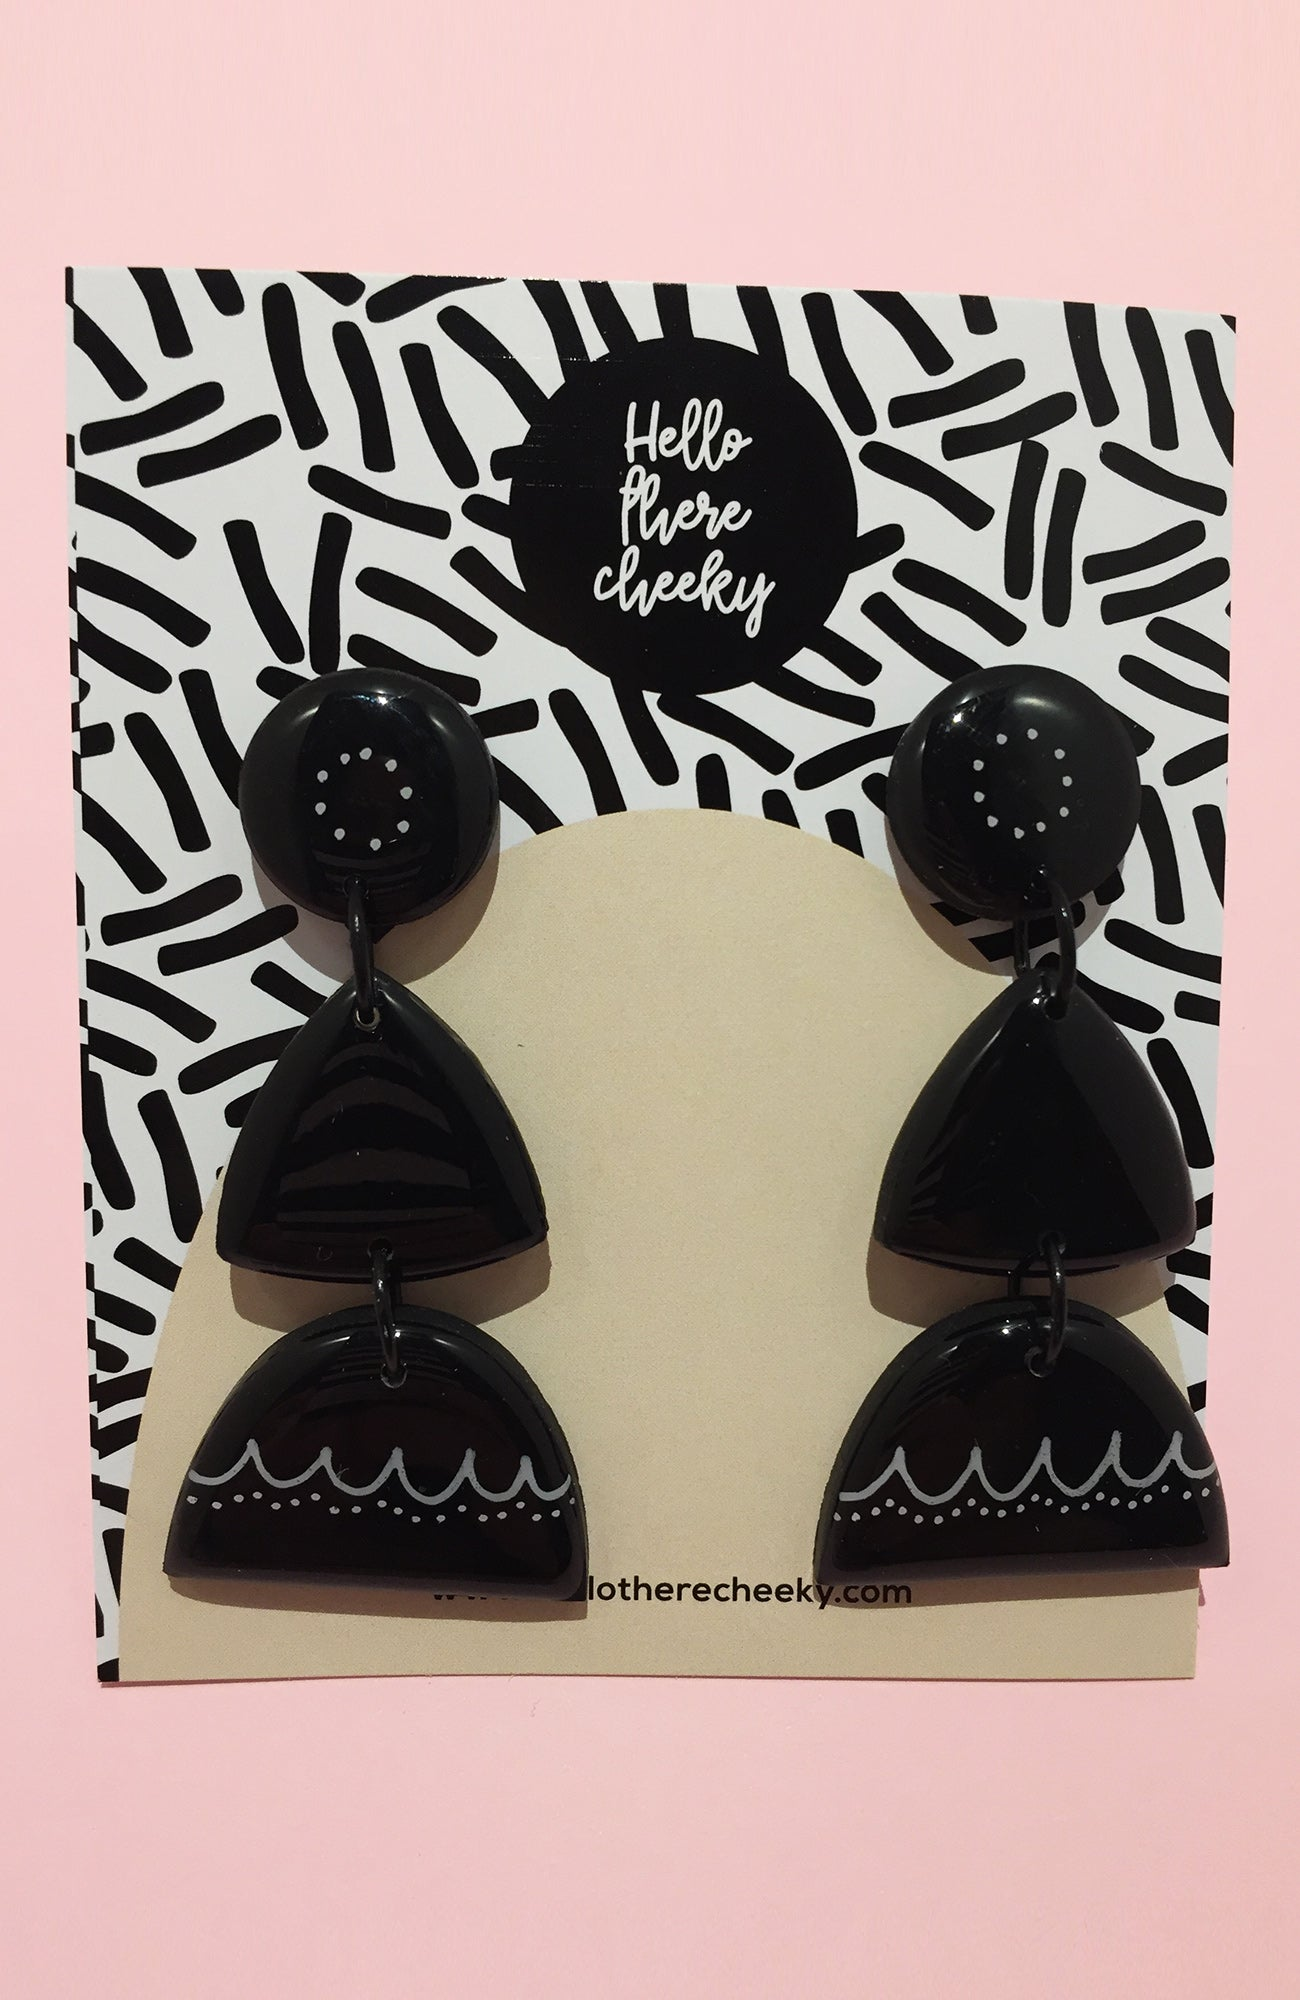 inBLACK. x Hello There Cheeky Black Dangles #2 - inBLACK. The Label | Women's Black Dresses